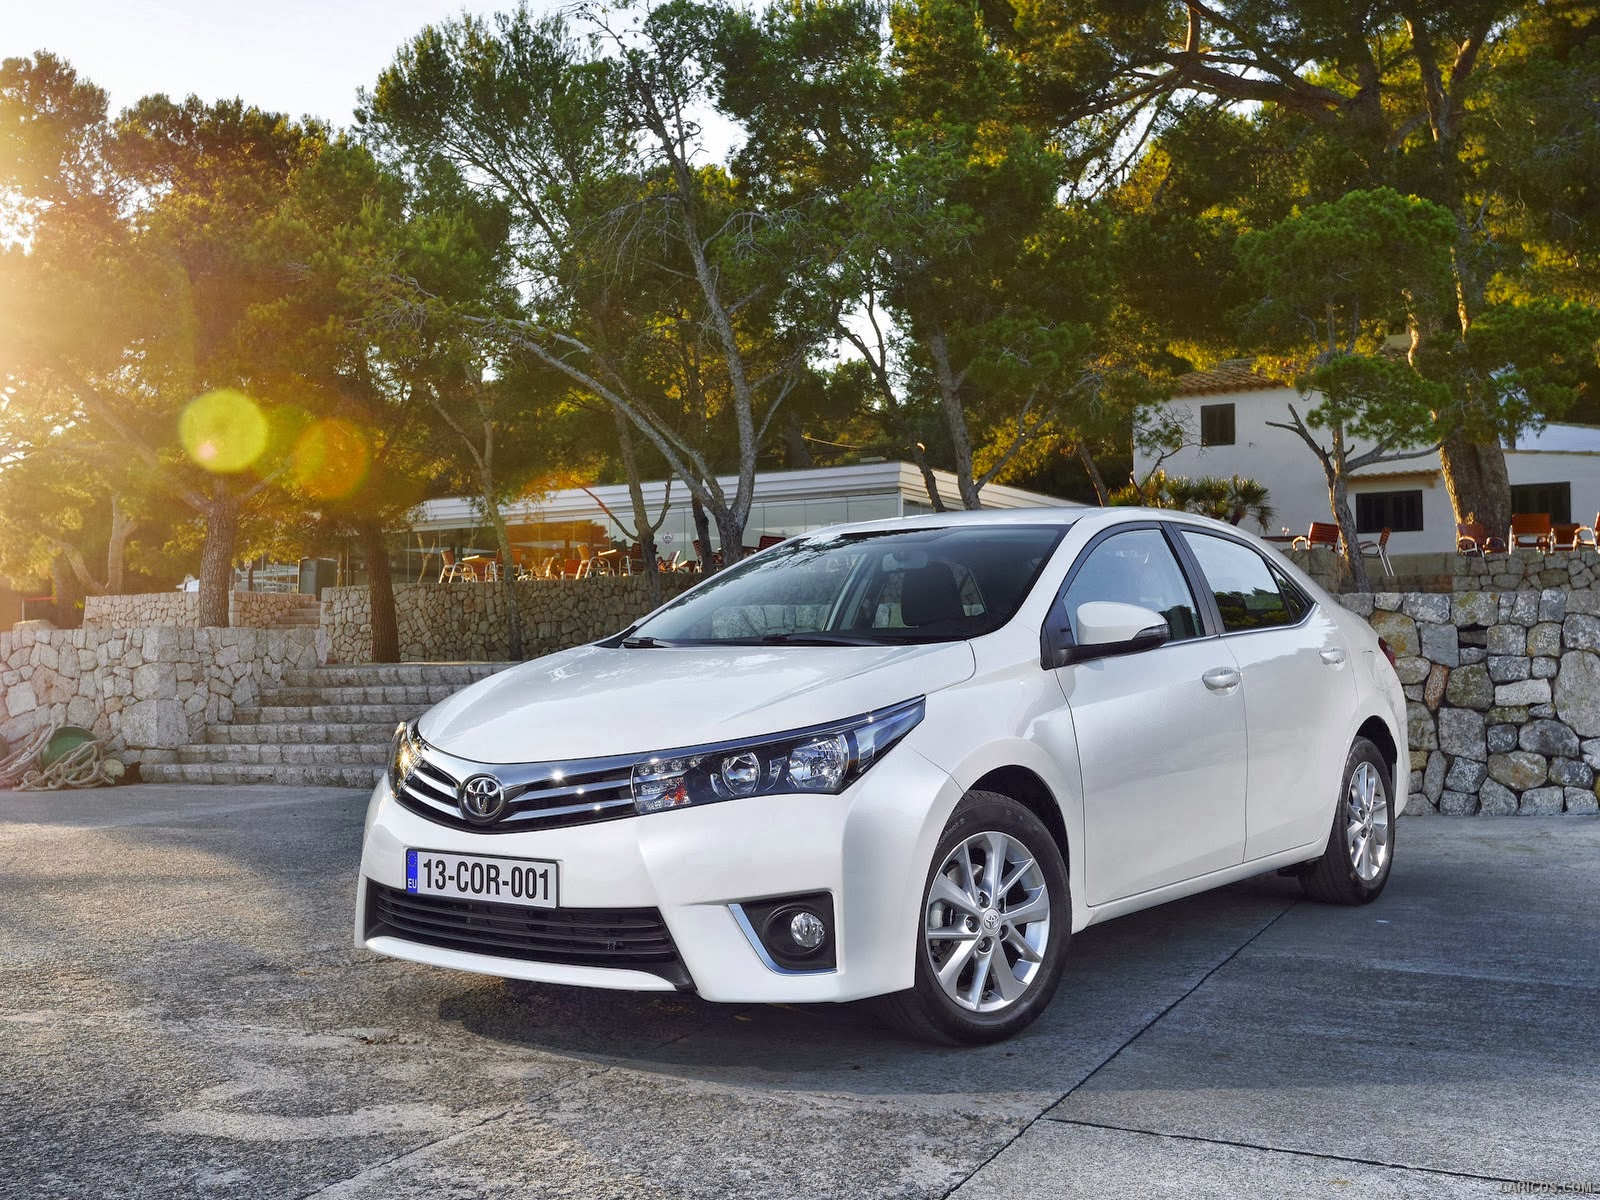 Toyota launched corolla xli and gli new shape in 2014 model see latest hd photos of corolla model and make them their backgrounds to beautify your desktop